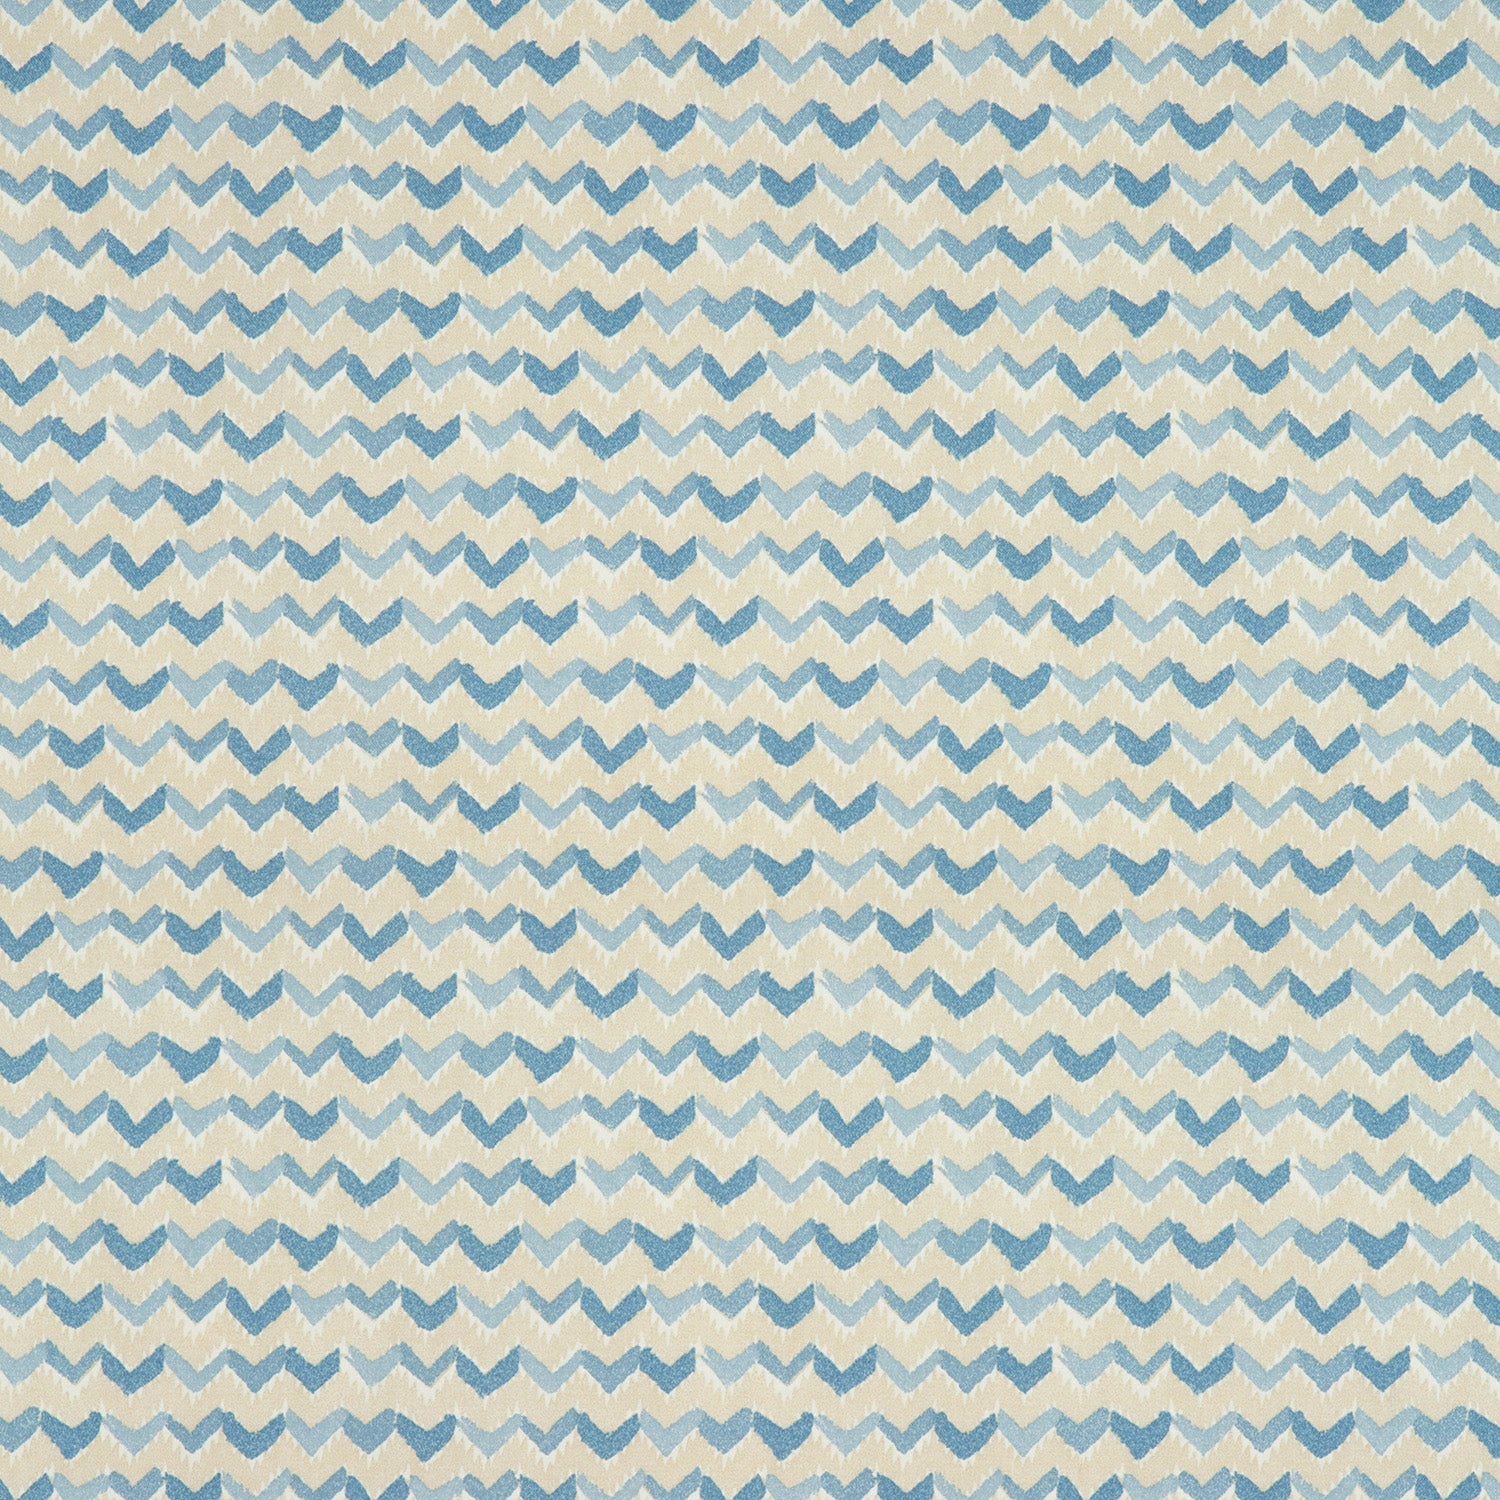 Fabric swatch of a light blue and white cotton fabric with a contemporary horizontal stripe, suitable for curtains, upholstery and loose covers